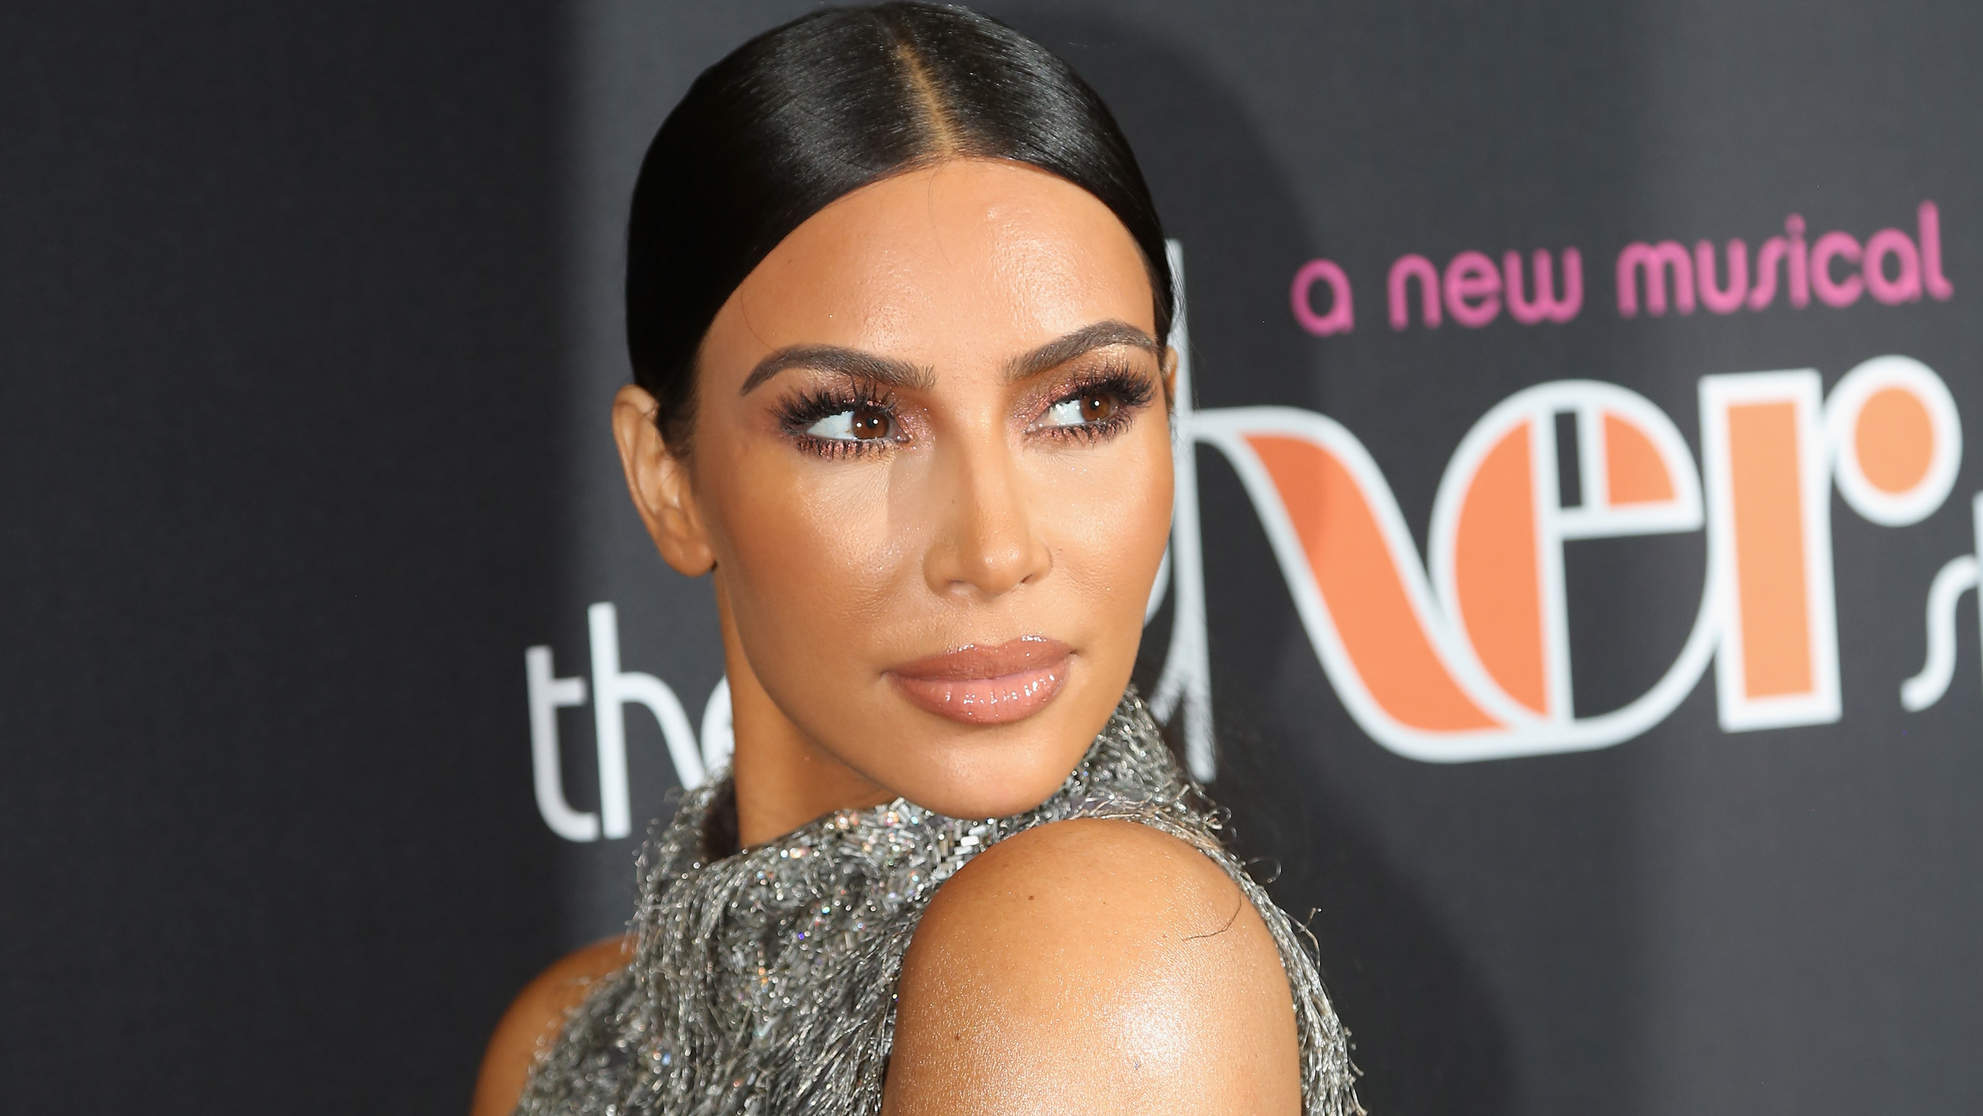 Kim Kardashian Reveals How She's Feeling Ahead of Baby Number 4's Arrival